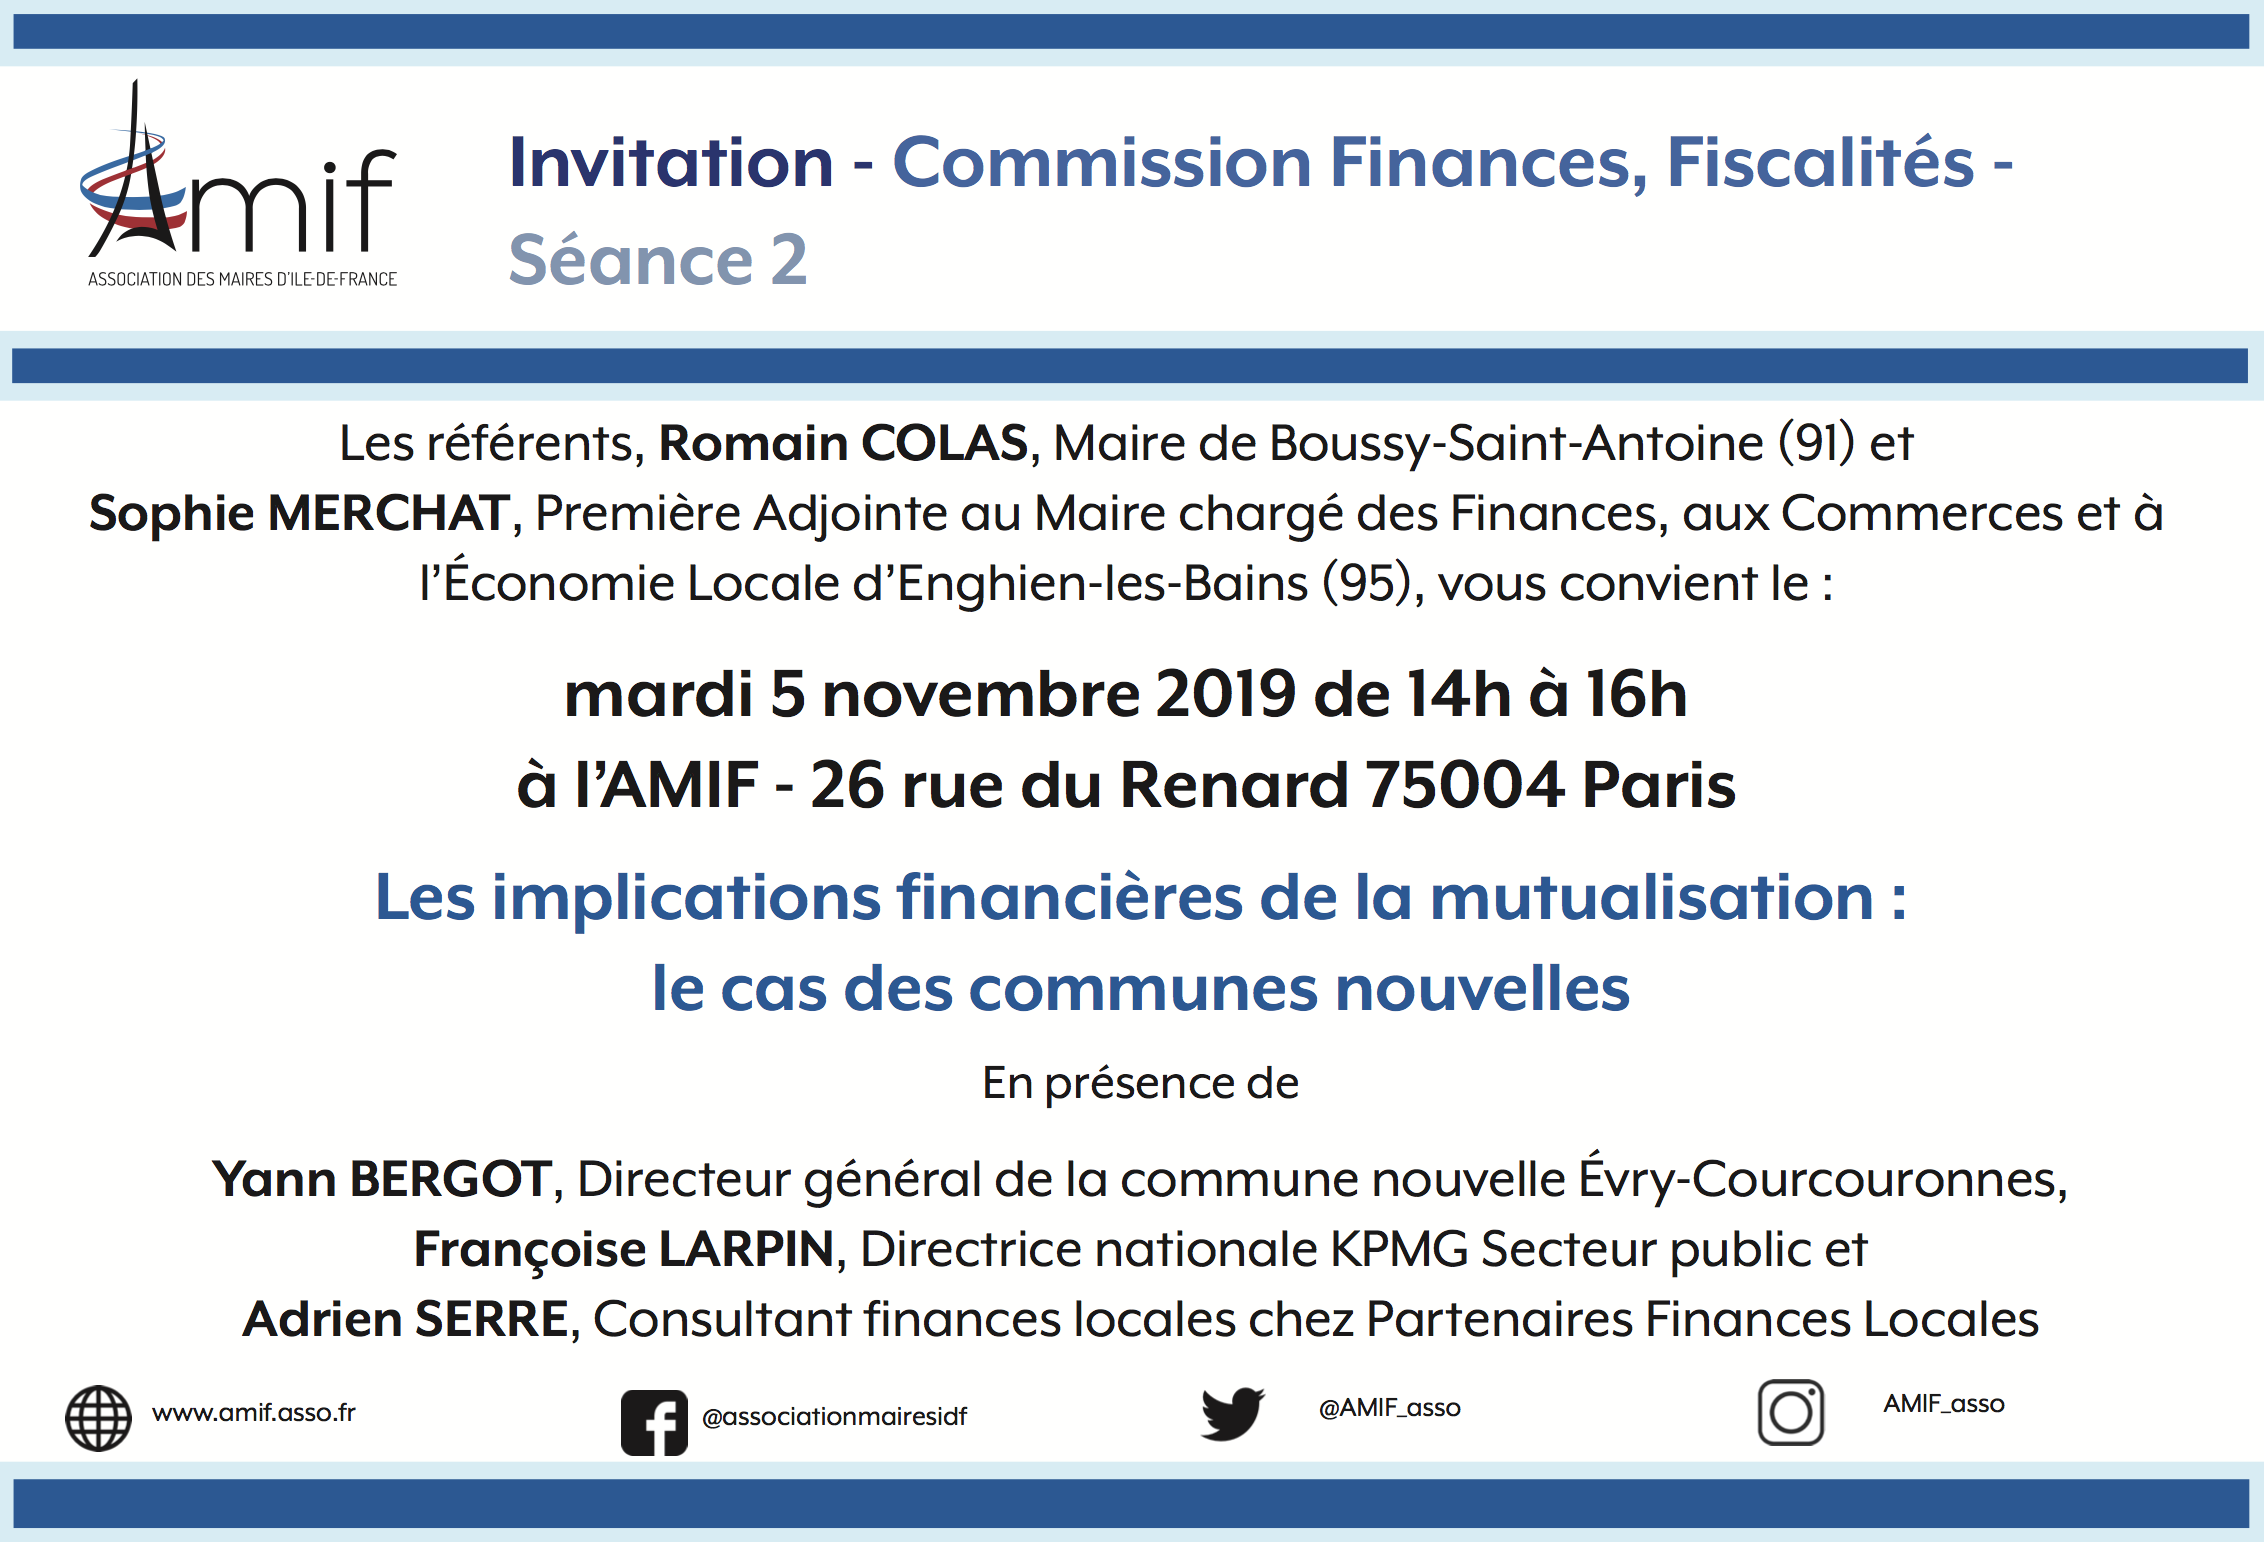 CommissionFinancesFiscalitesSeance205novembre2019v2